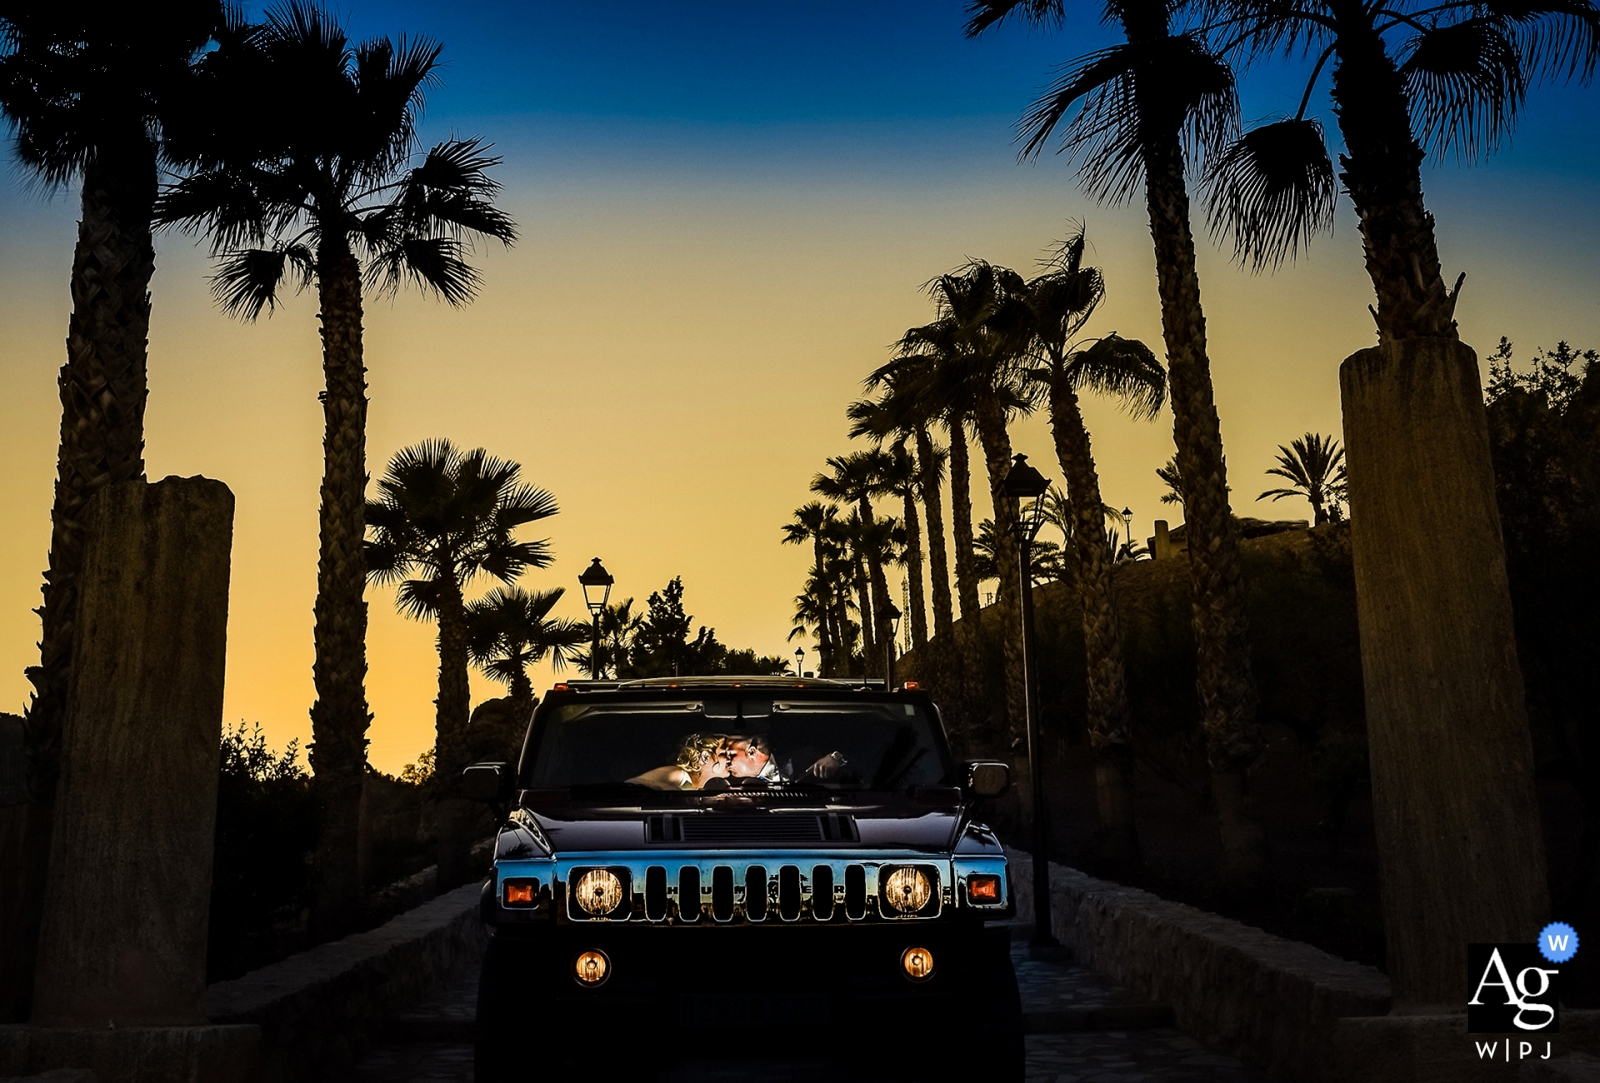 Murcia Spain wedding photographer   Wedding Sunset portraits of the bride and groom in a hummer with silhouetted palm trees